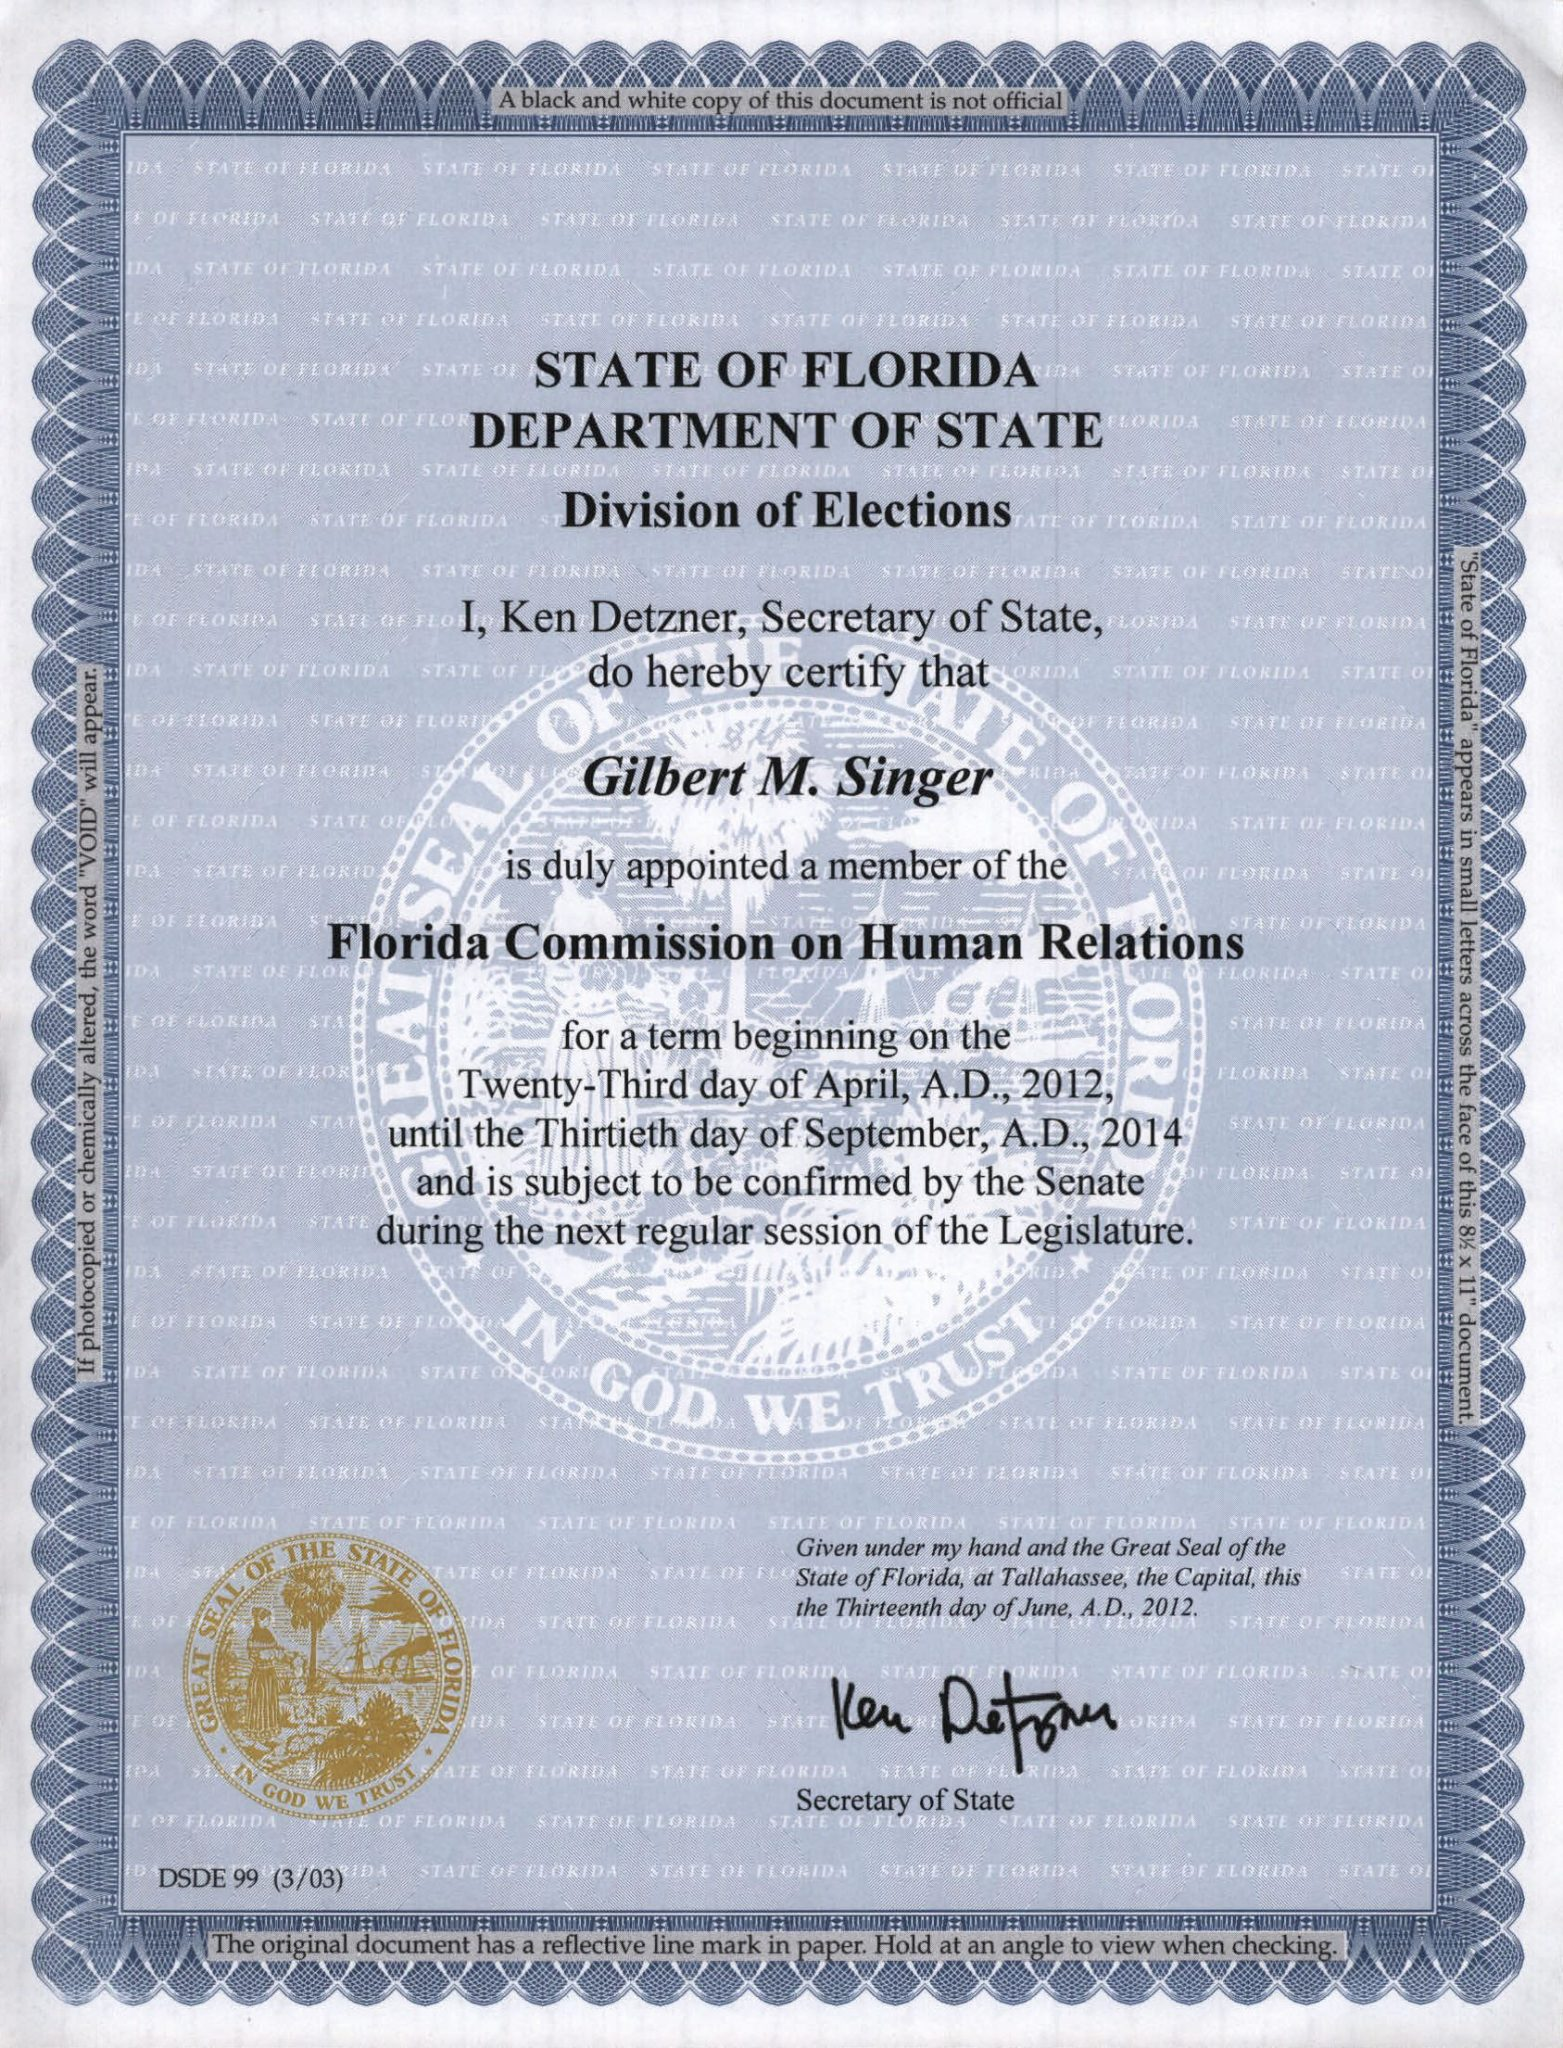 Gil Singer appointed to FL COmmission on Human Relations